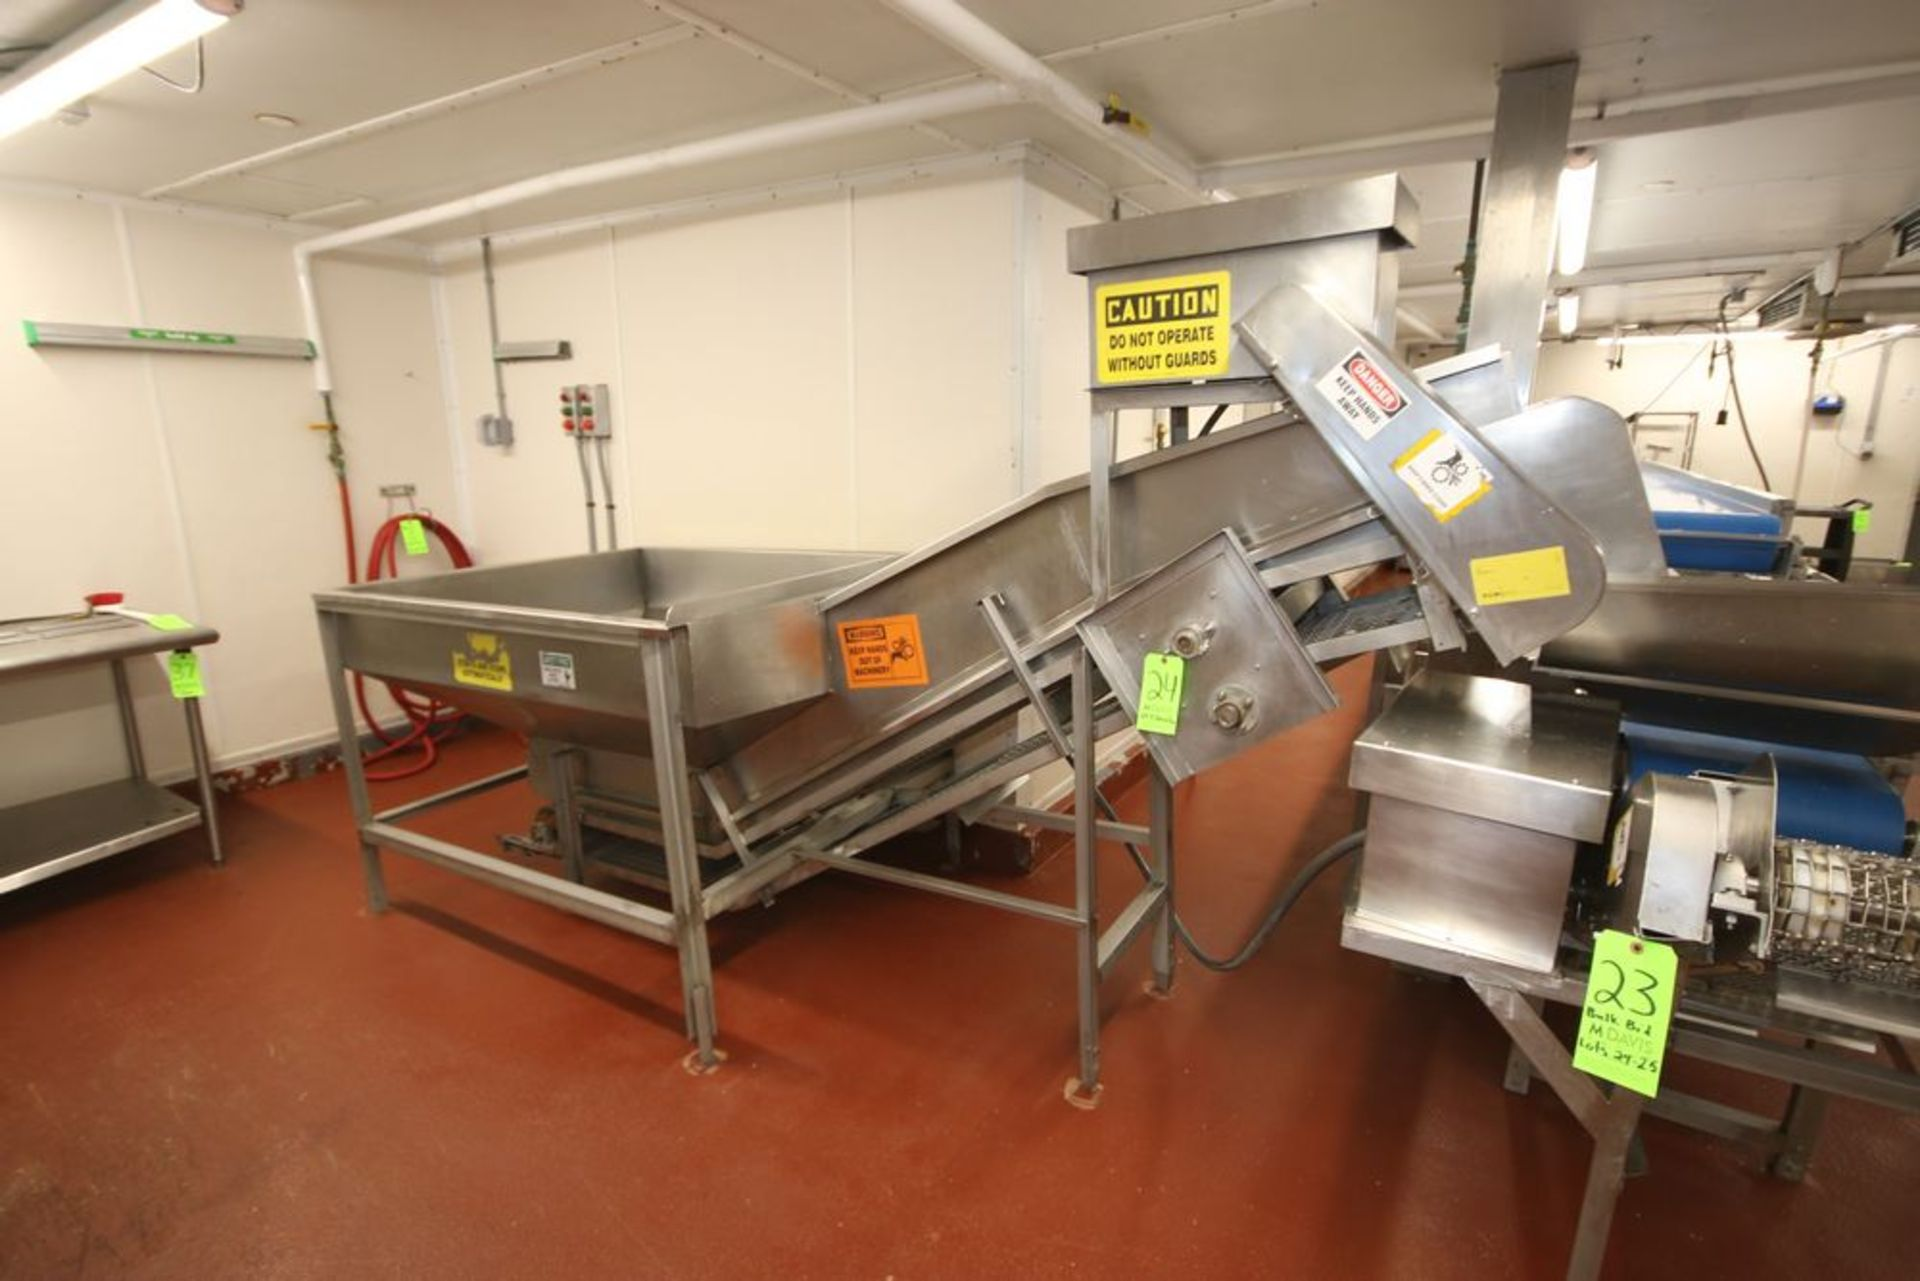 Lot 23 - BULK BID LOTS 24 & 25 INCLUDES: S/S Incline Conveyor with S/S Hopper, with S/S Mesh Belt with S/S